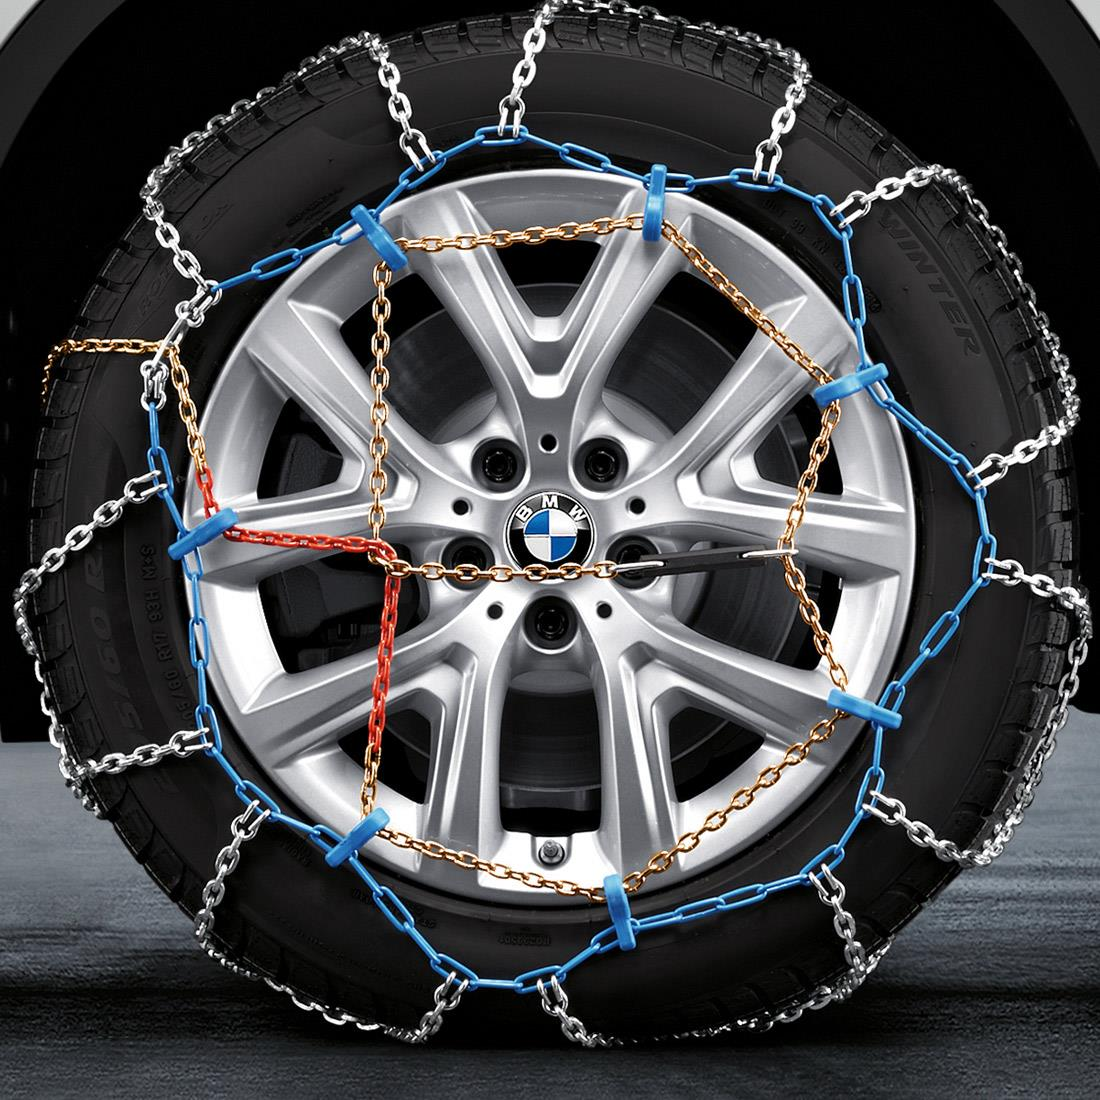 BMW Snow Chain System for 225/50R17 & 225/55R16.